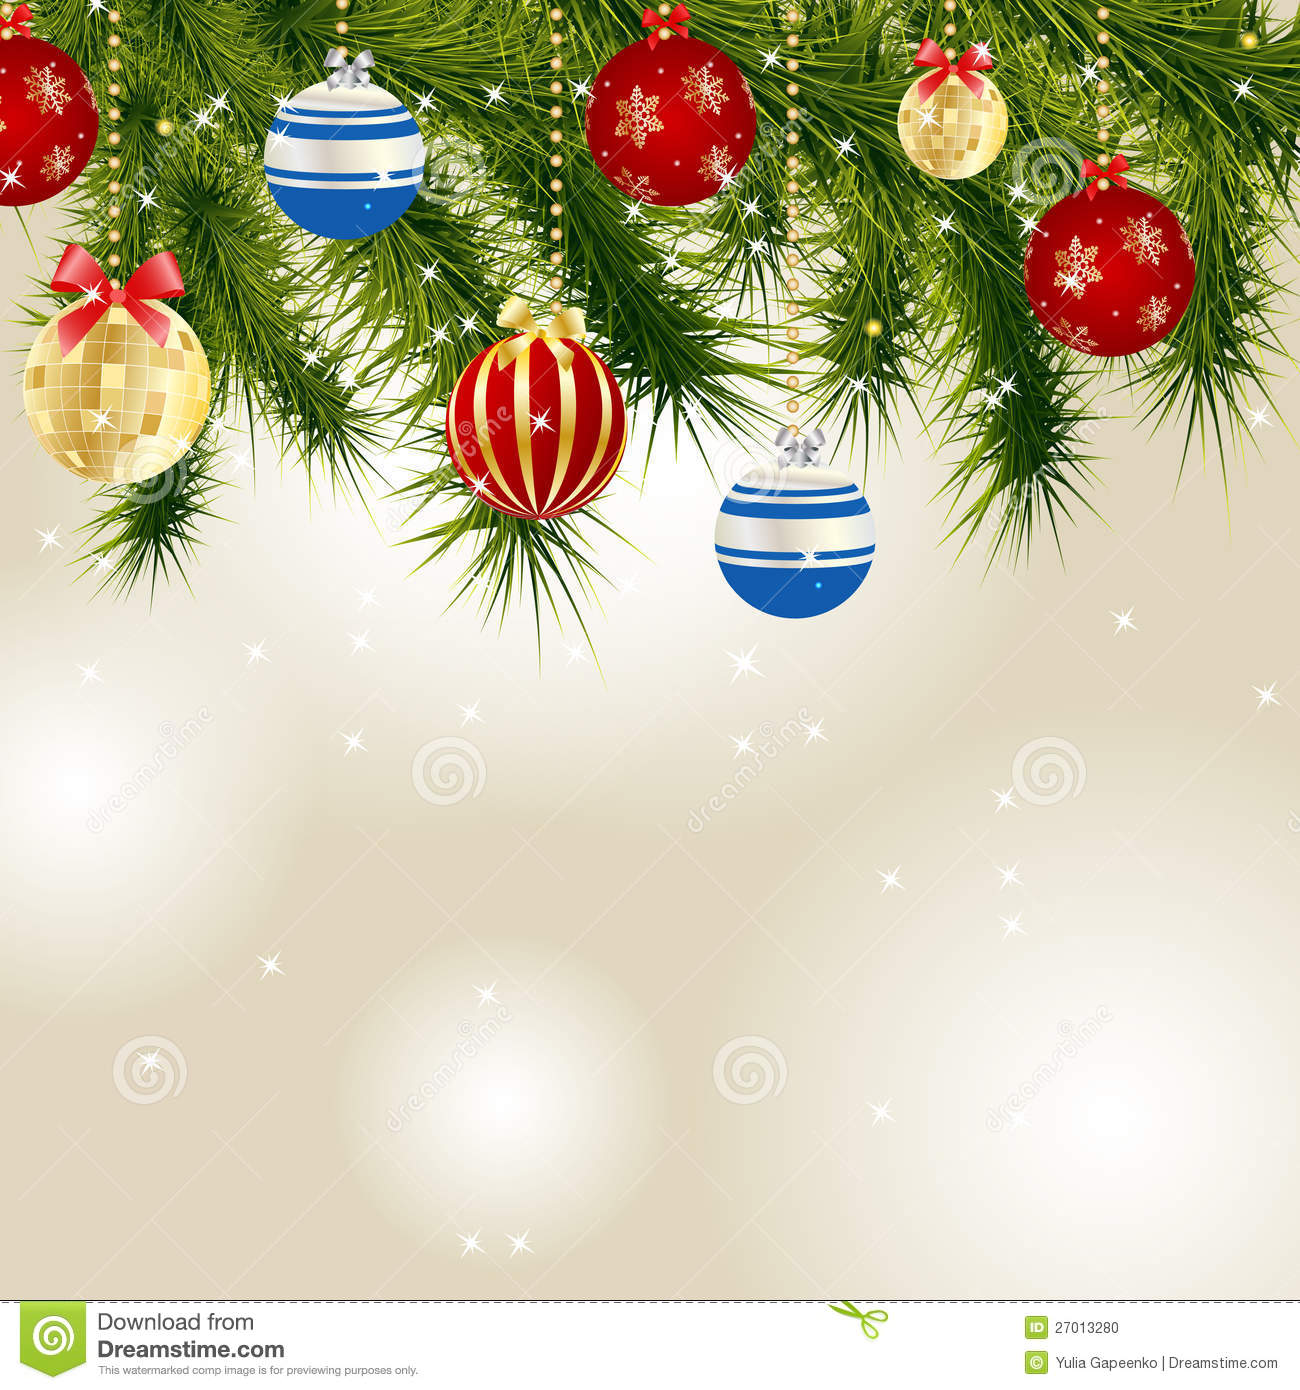 xmas new year backgrounds